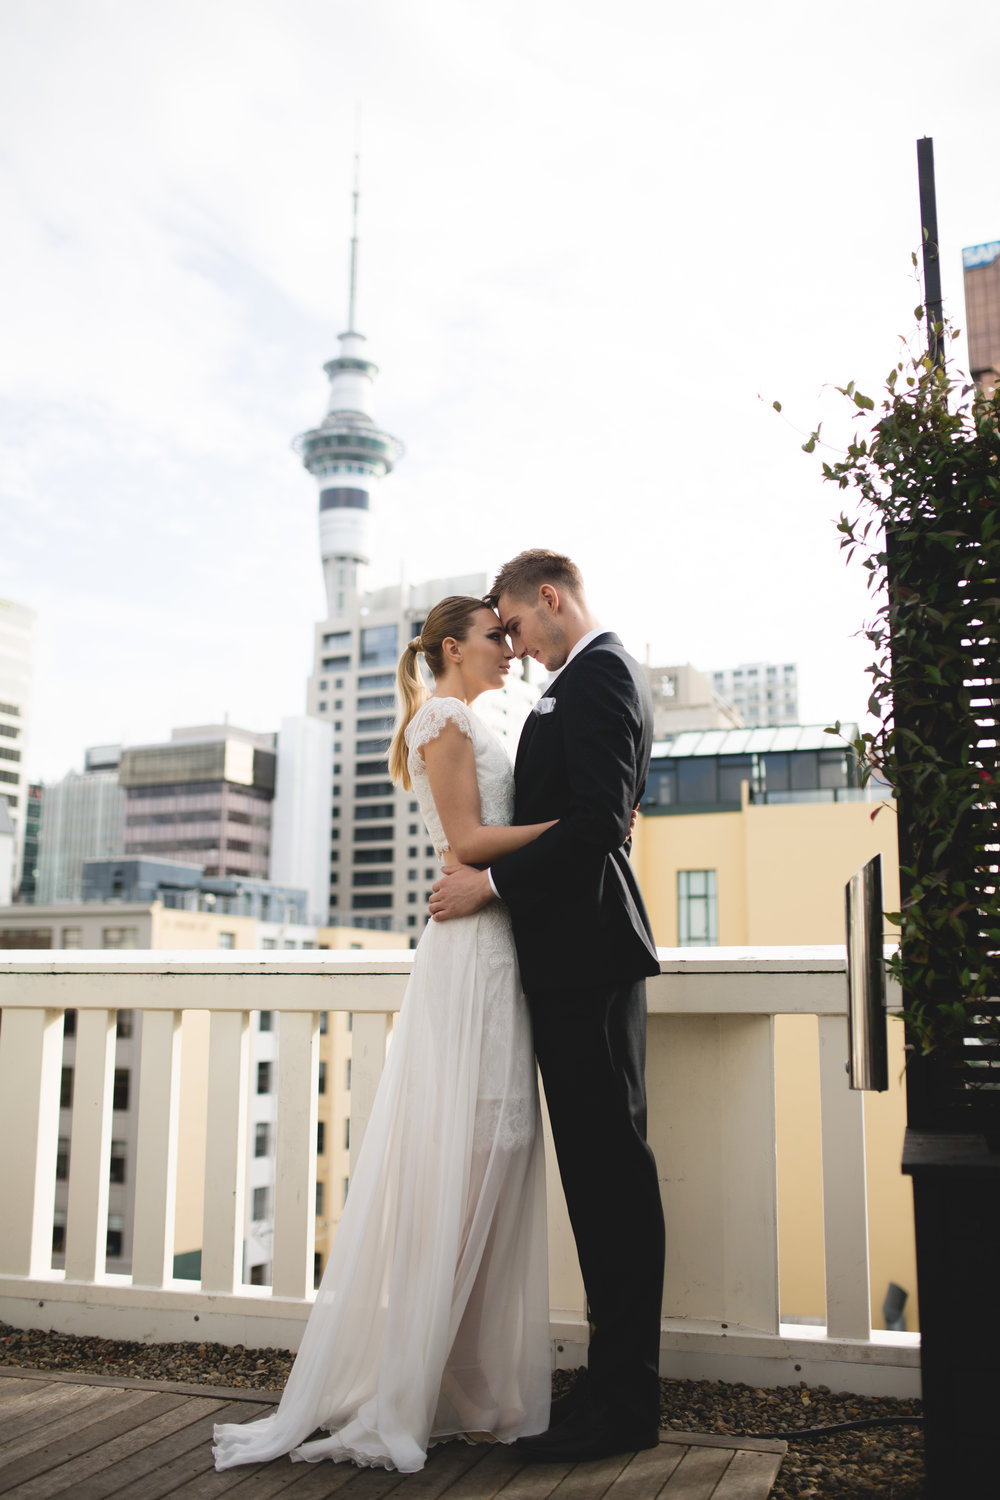 urban rooftop elopement -® Sweet Events Photography 2016 -82.jpg